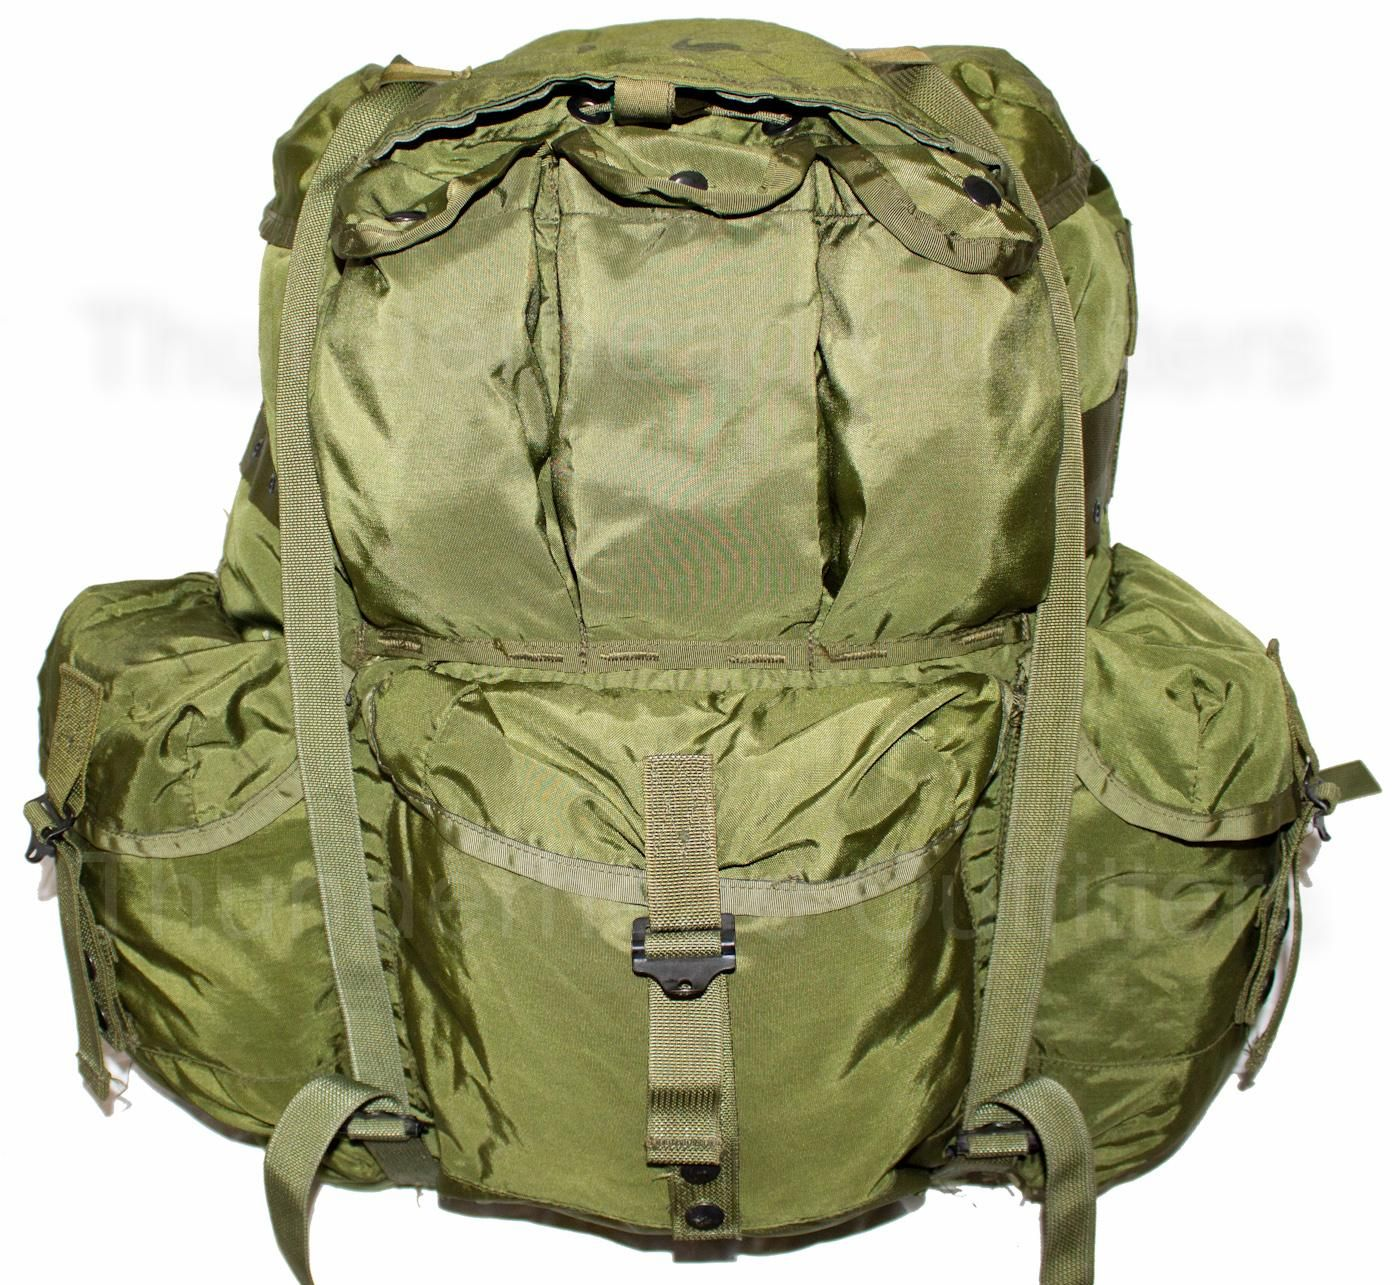 US Army ALICE LC-1 Large Field Pack 62a5693fa52b